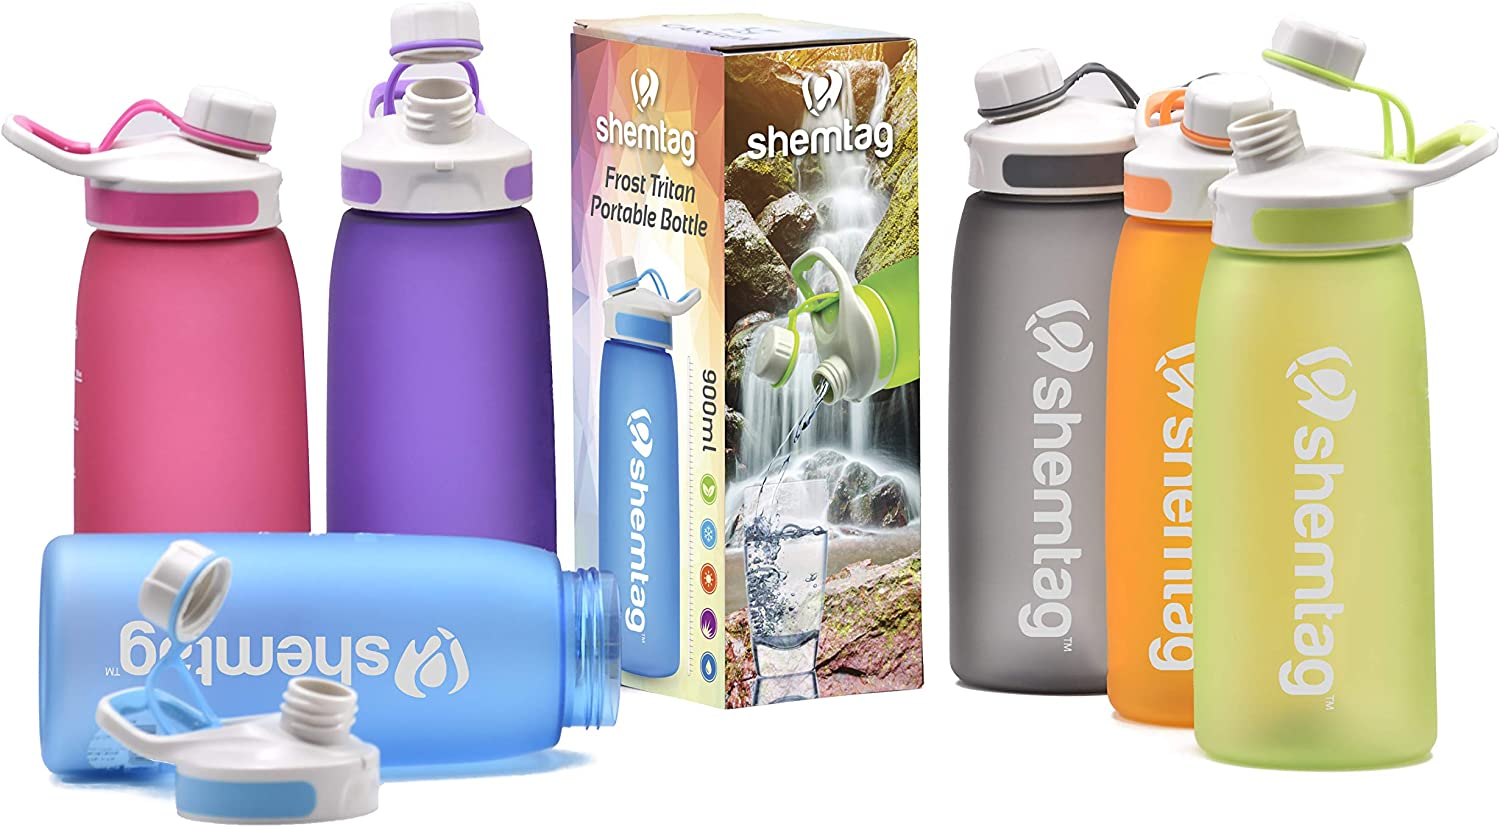 Wth Screw Cap BPA-FREE For Sports /& Camping 900ml Shemtag Color Water Bottle-Tritan Water Bottle 30oz